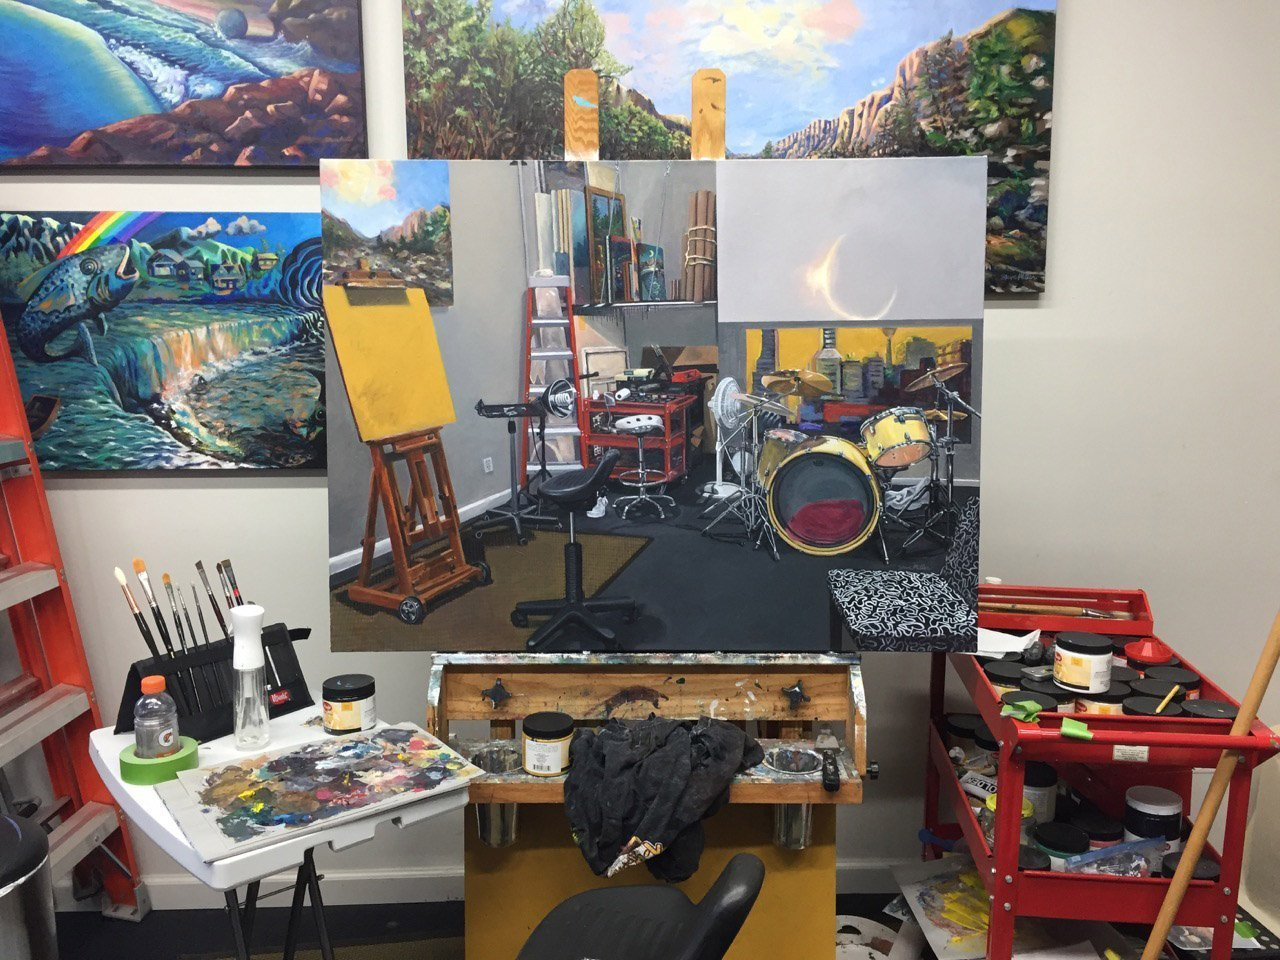 photo of my painting on the easel in my studio